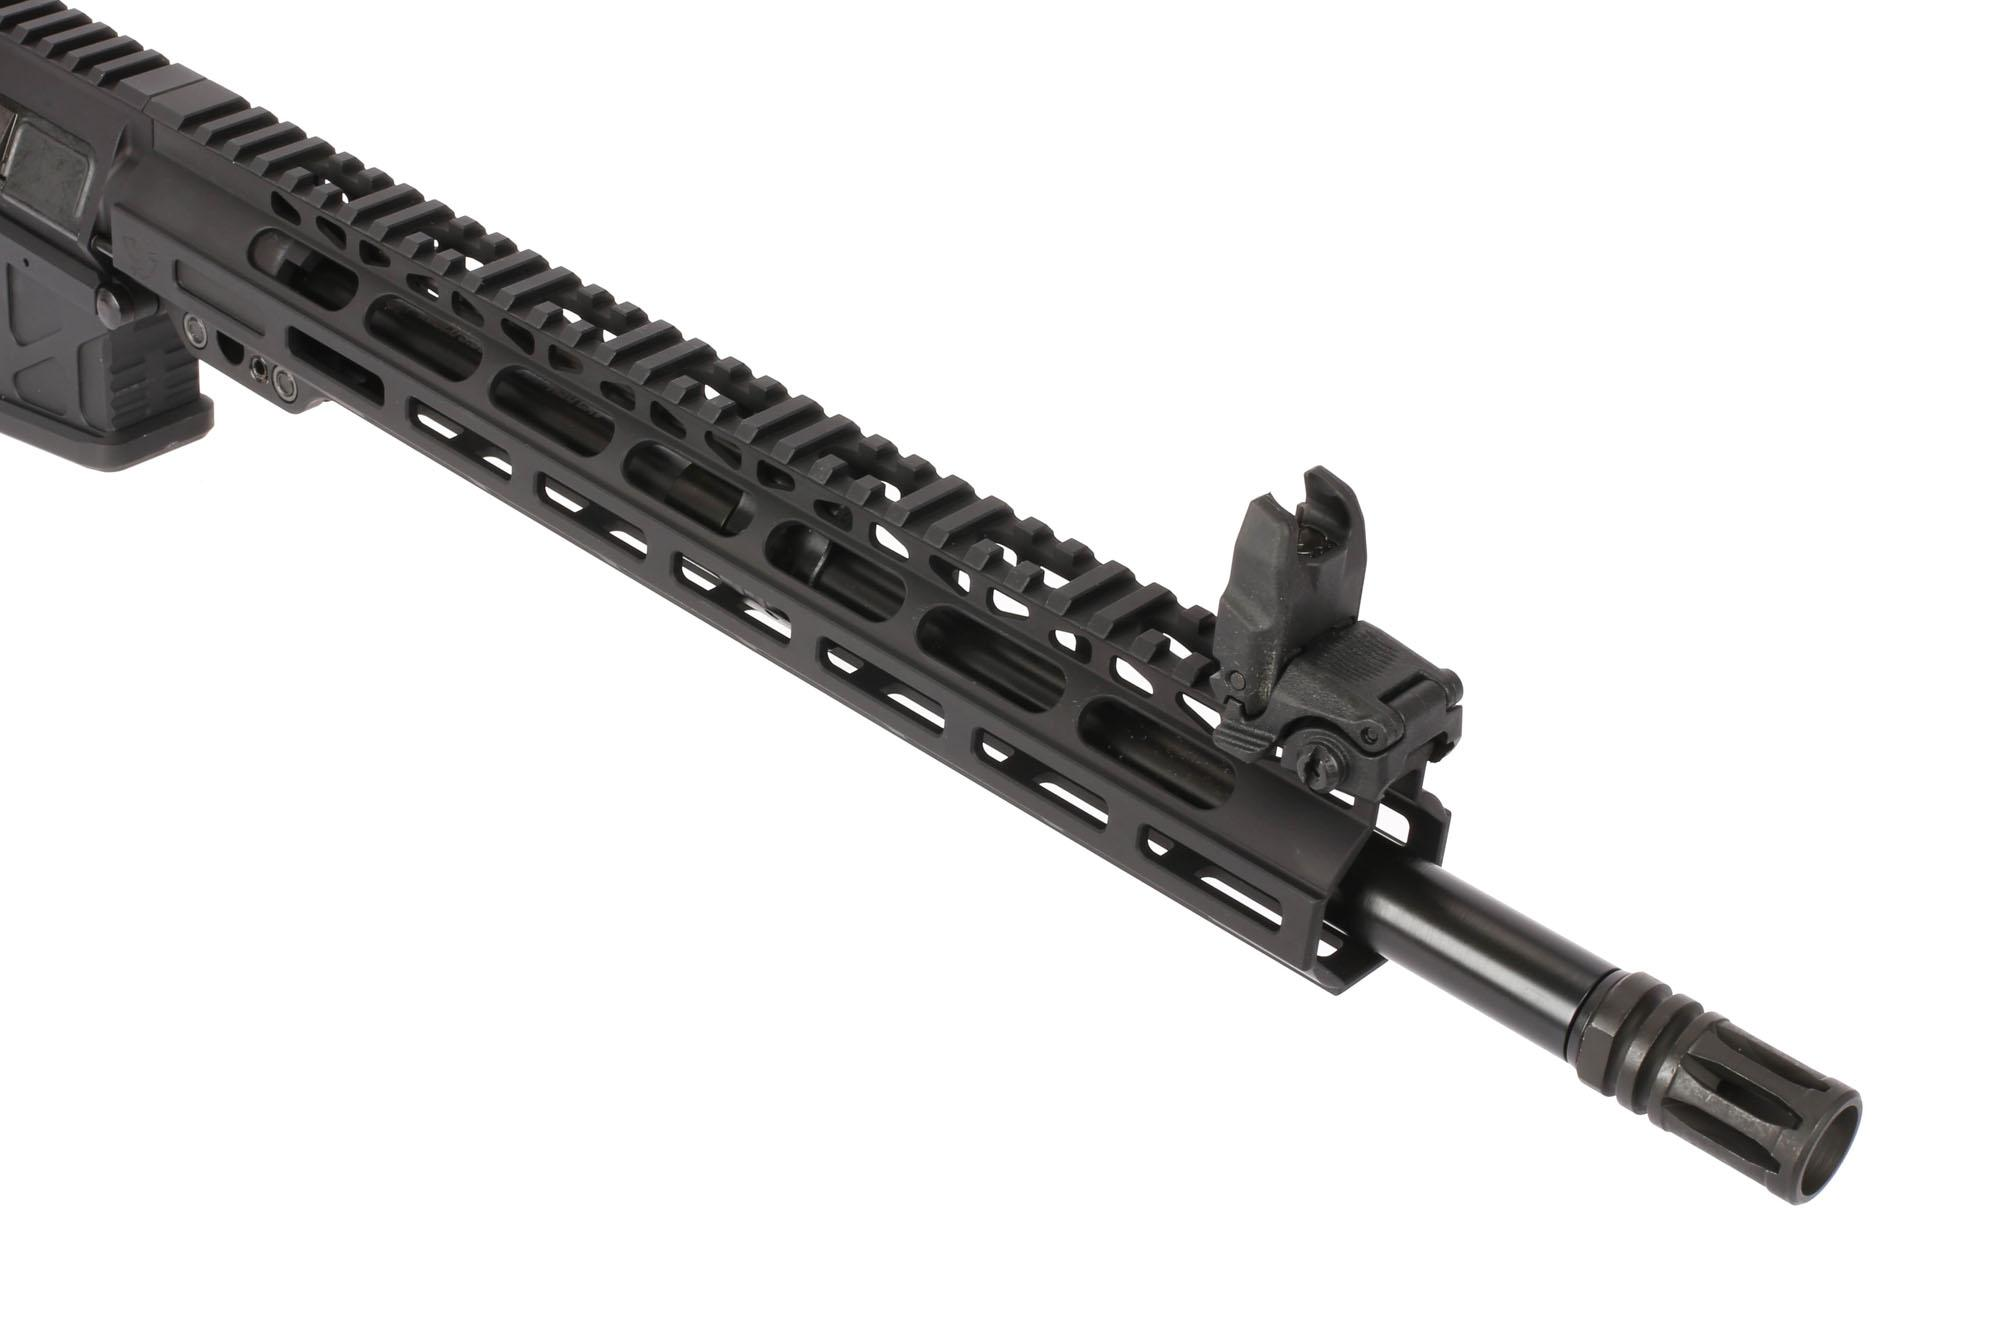 American Defense 16in UIC Mod 1 LE AR-15 Rifle with Magpul MBUS Sights